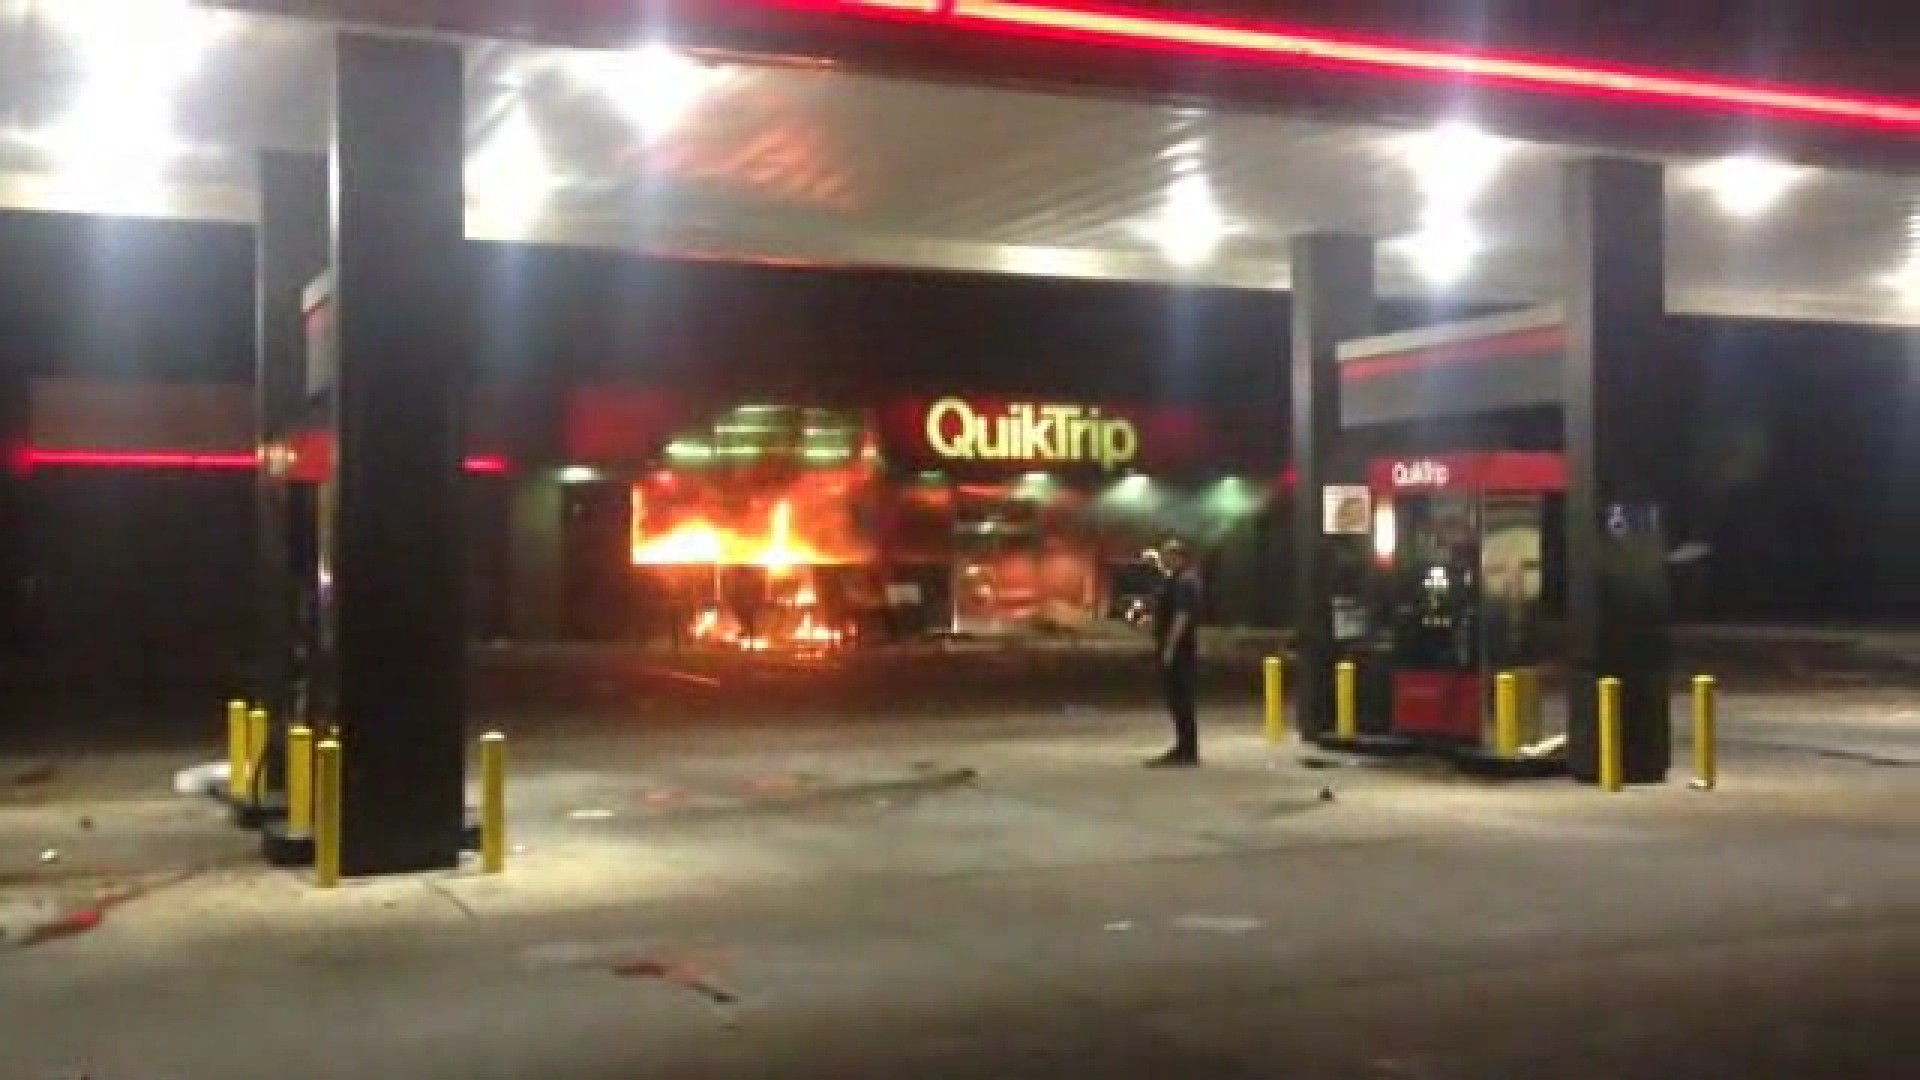 Ferguson Quiktrip in looted and set on fire - LA Times